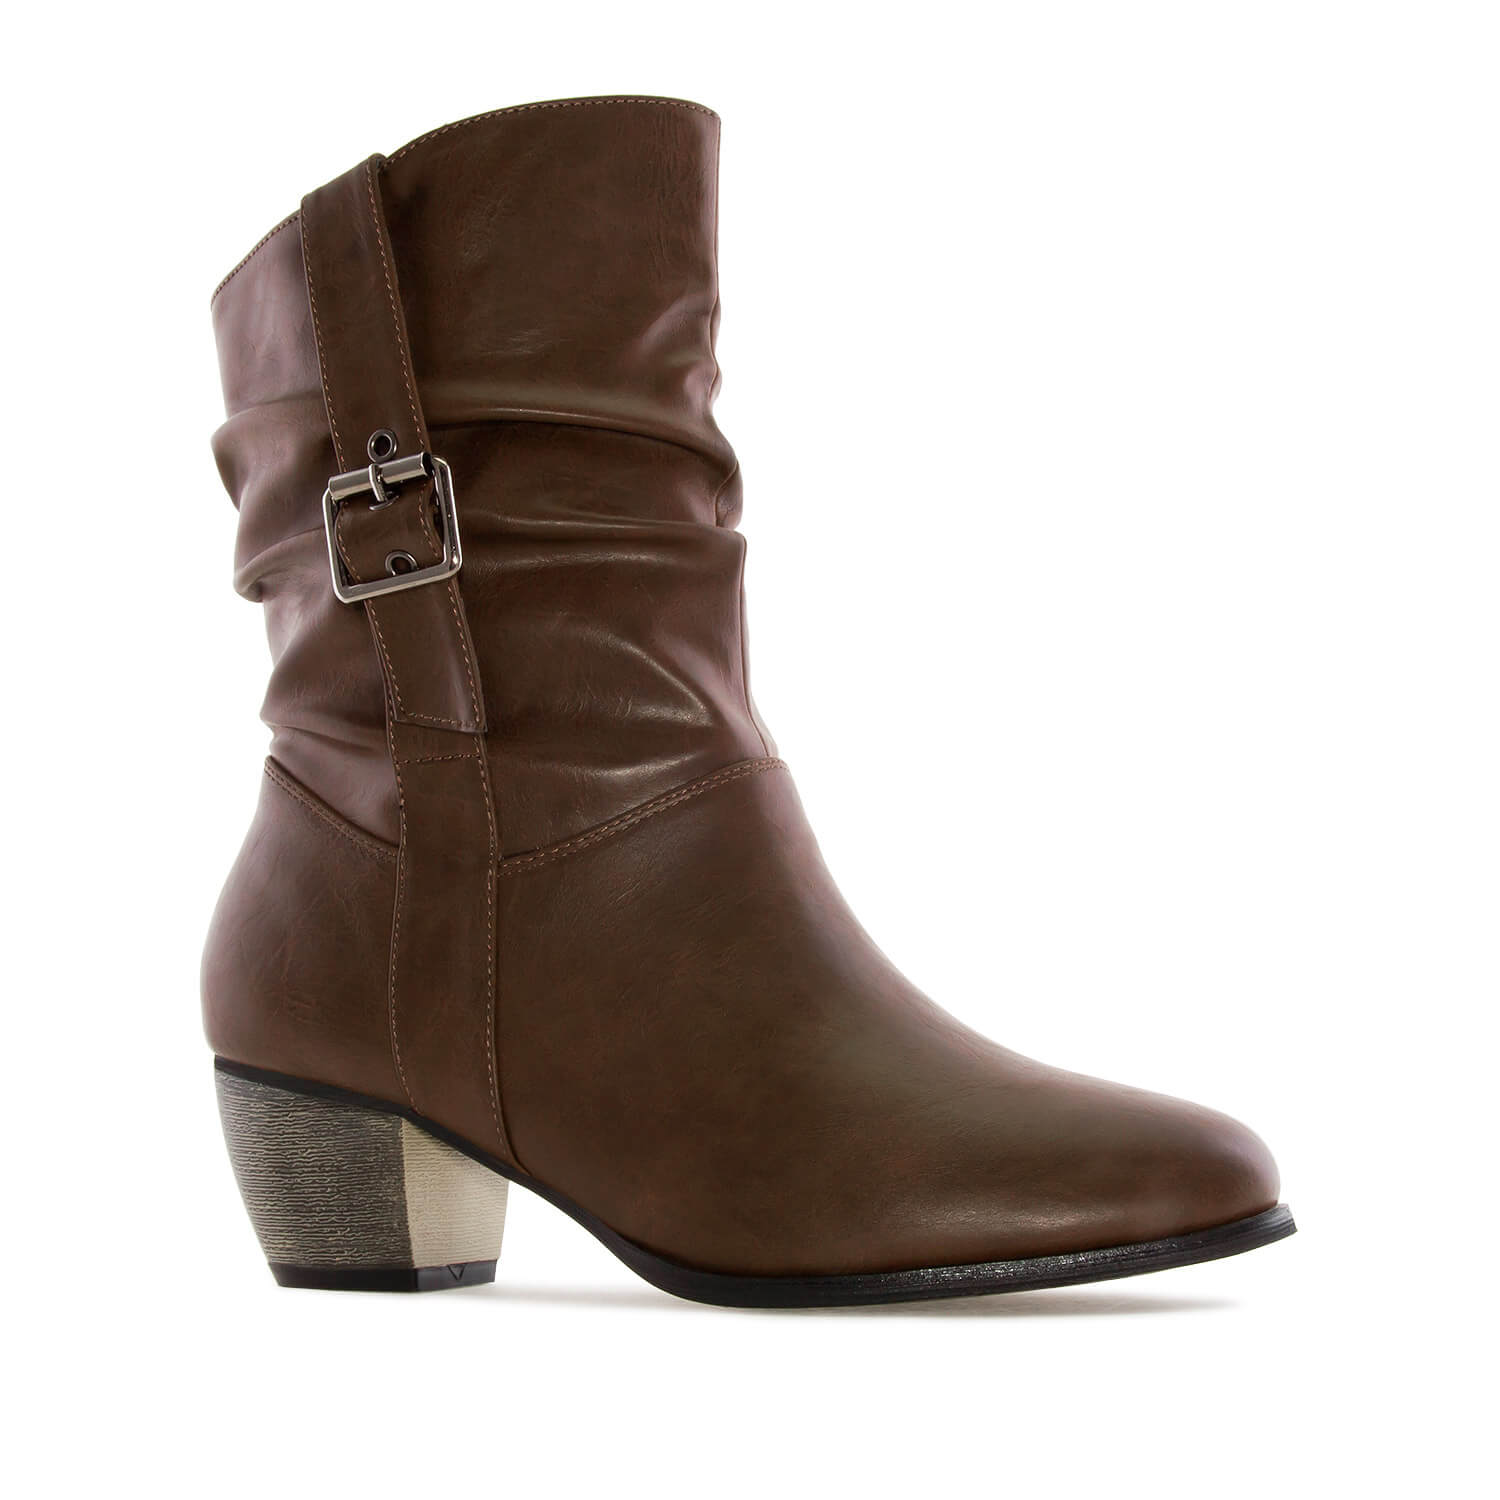 Mid-Calf Buckle Boots in Brown faux Leather